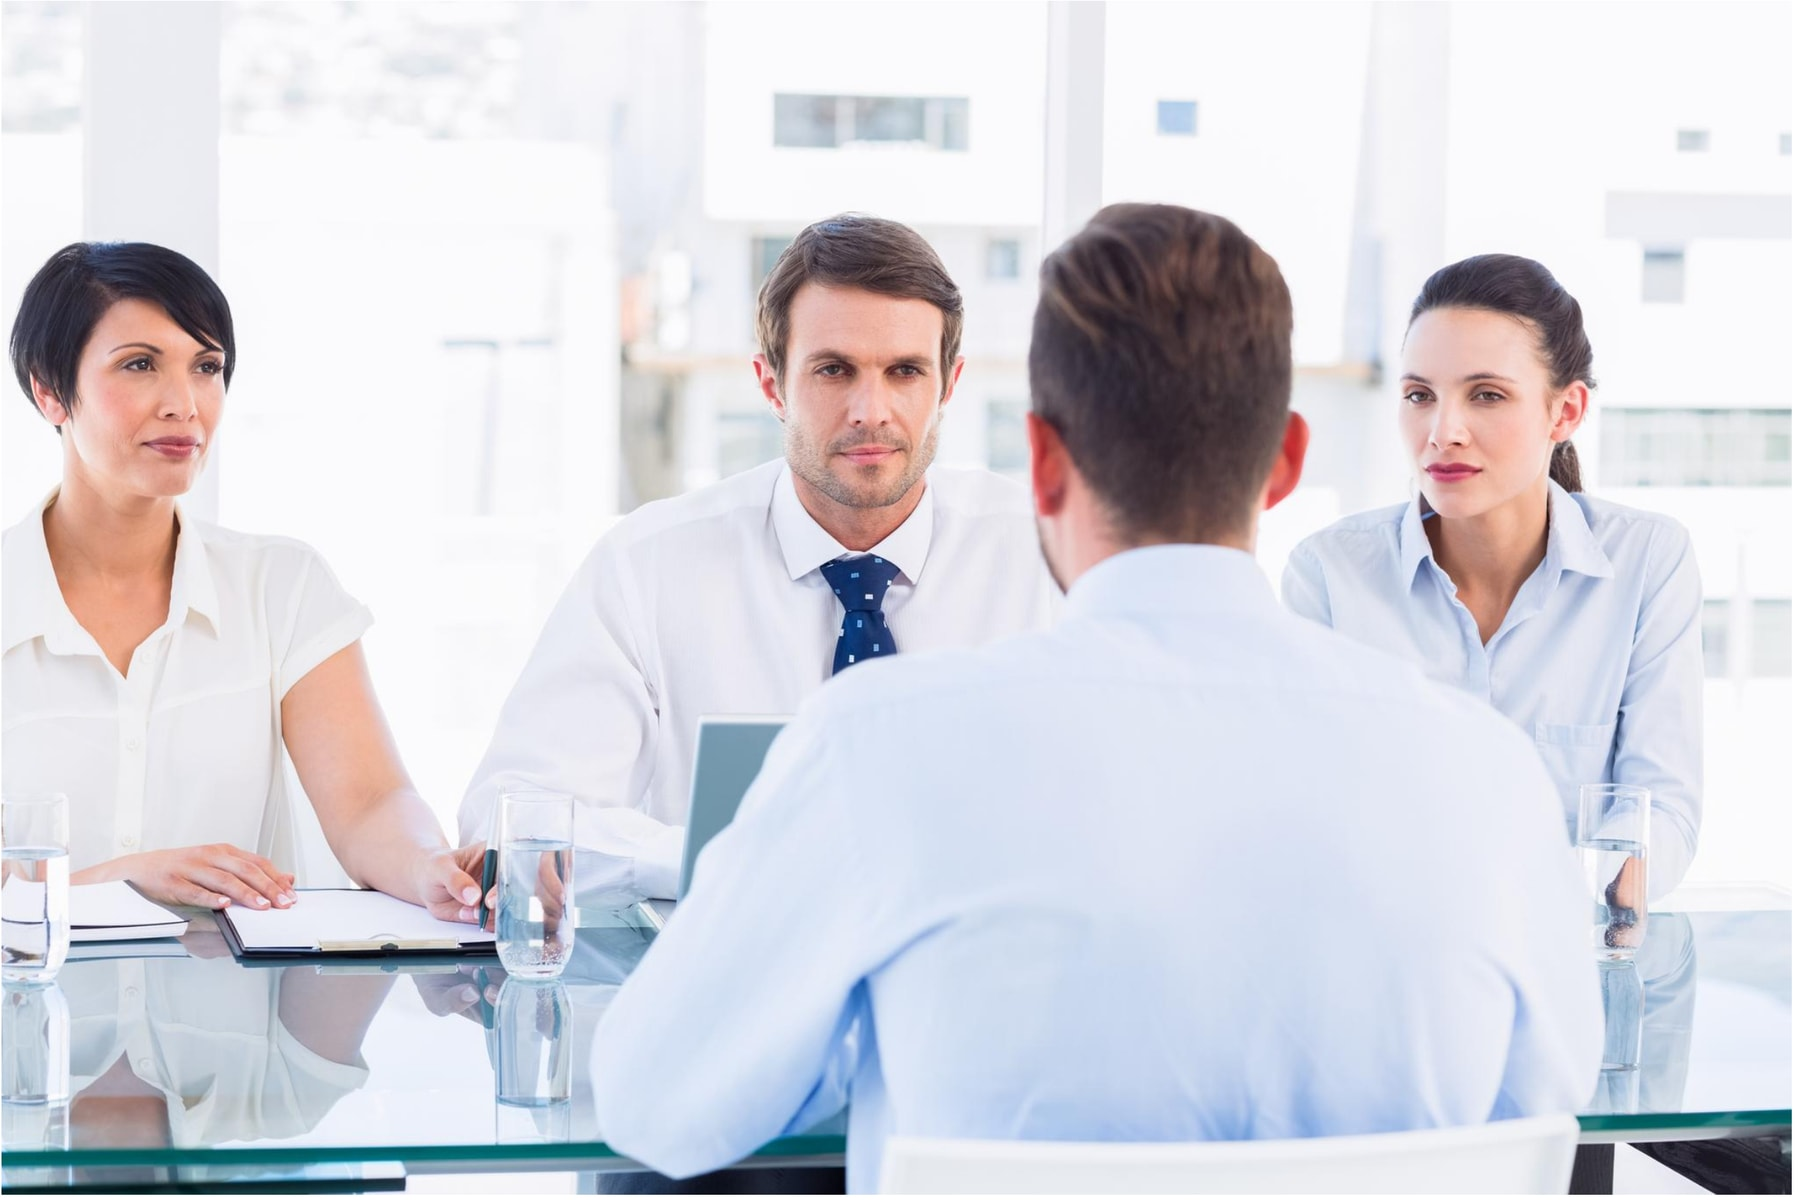 Three managers interviewing a male candidate during formal interview